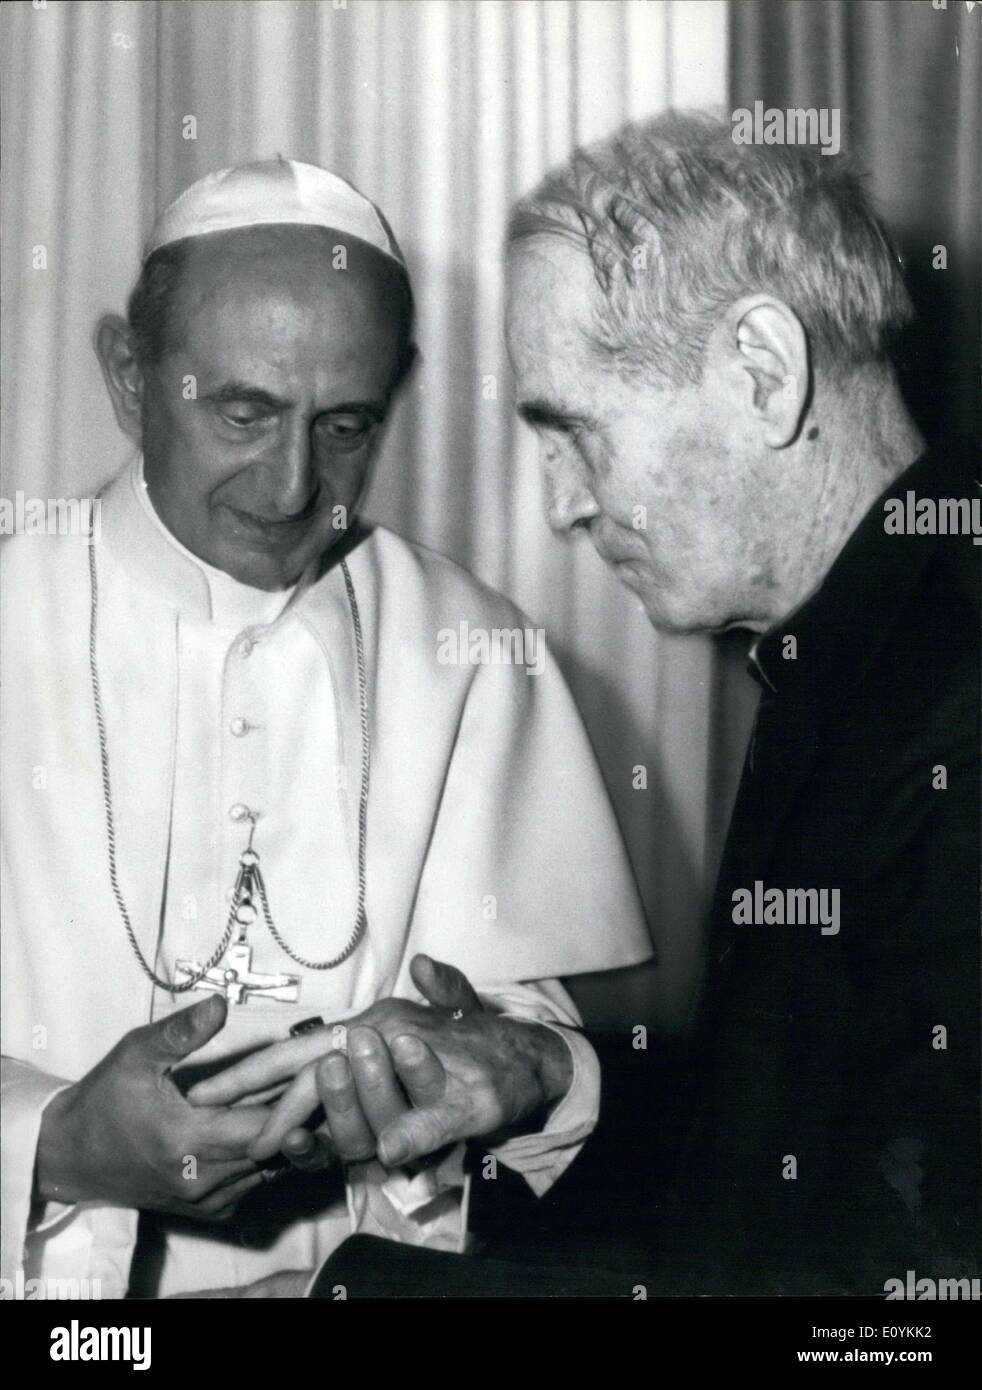 Aug. 25, 1970 - Walsh, the American prelate who was imprisoned for several years in the Pekin prisons for spying and recently released, was received today by Pope Paolo VI at his summer home in Gandolfo Castle by a private audience. - Stock Image